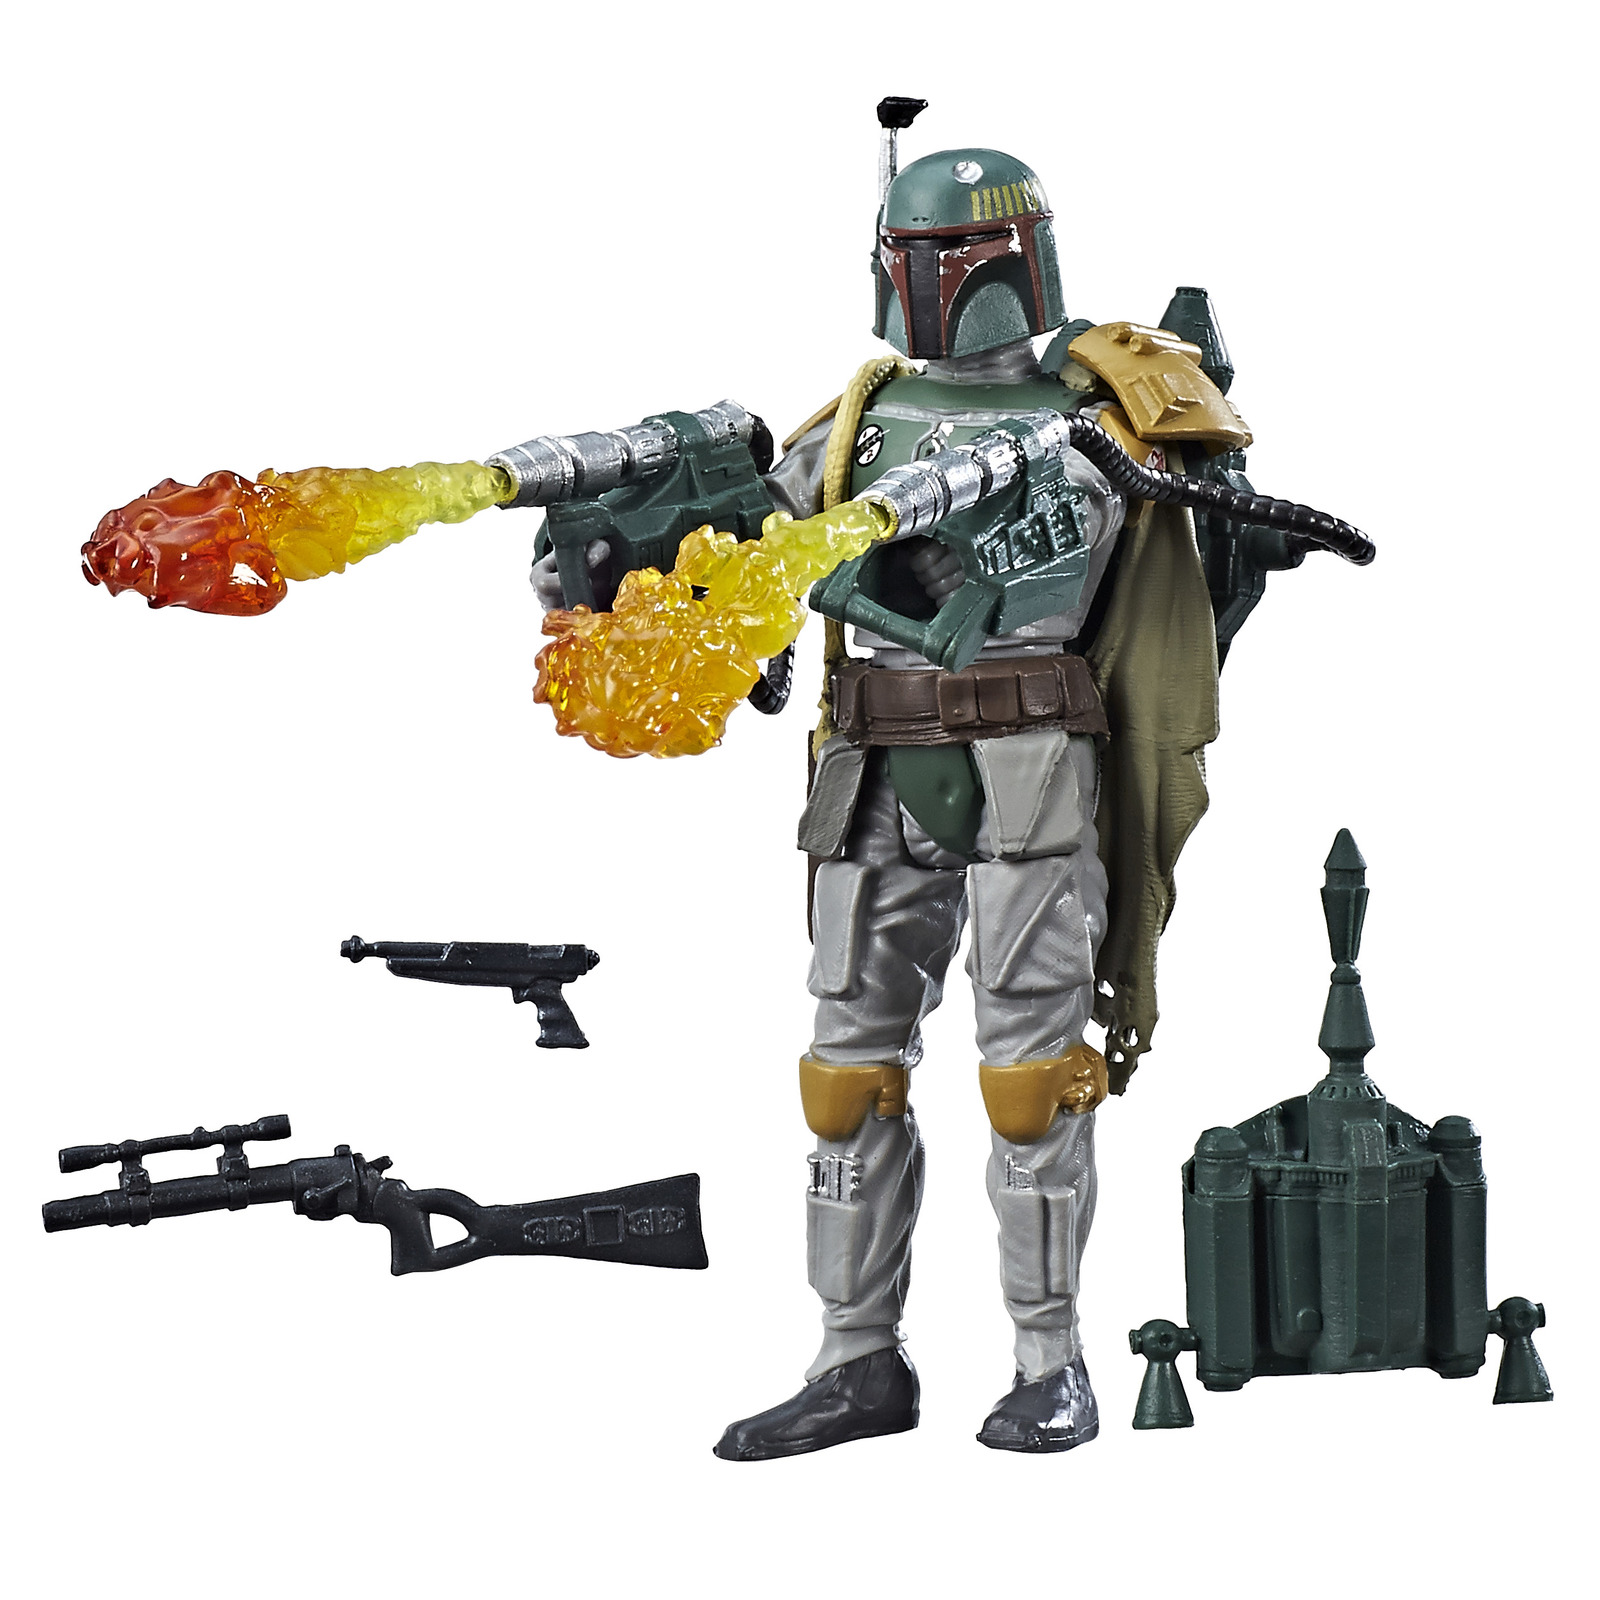 Star Wars: Force Link Figure - Han Solo & Boba Fett 2 Pack image